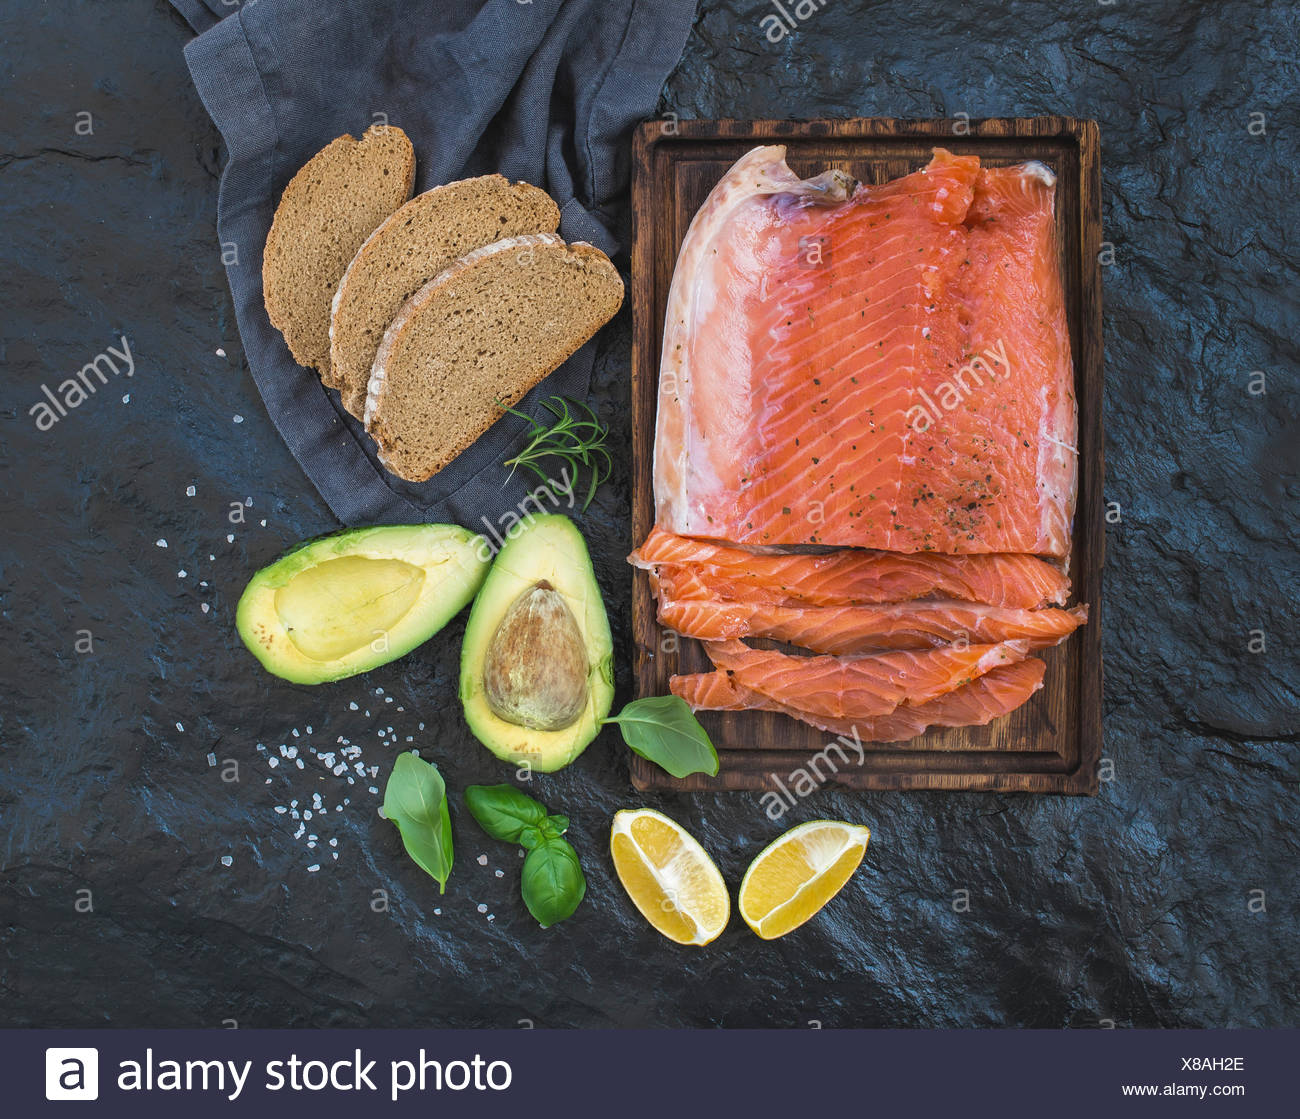 Smoked salmon filet with lemon, avocado, fresh herbs and bred on wooden serving board over dark stone backdrop, top view - Stock Image